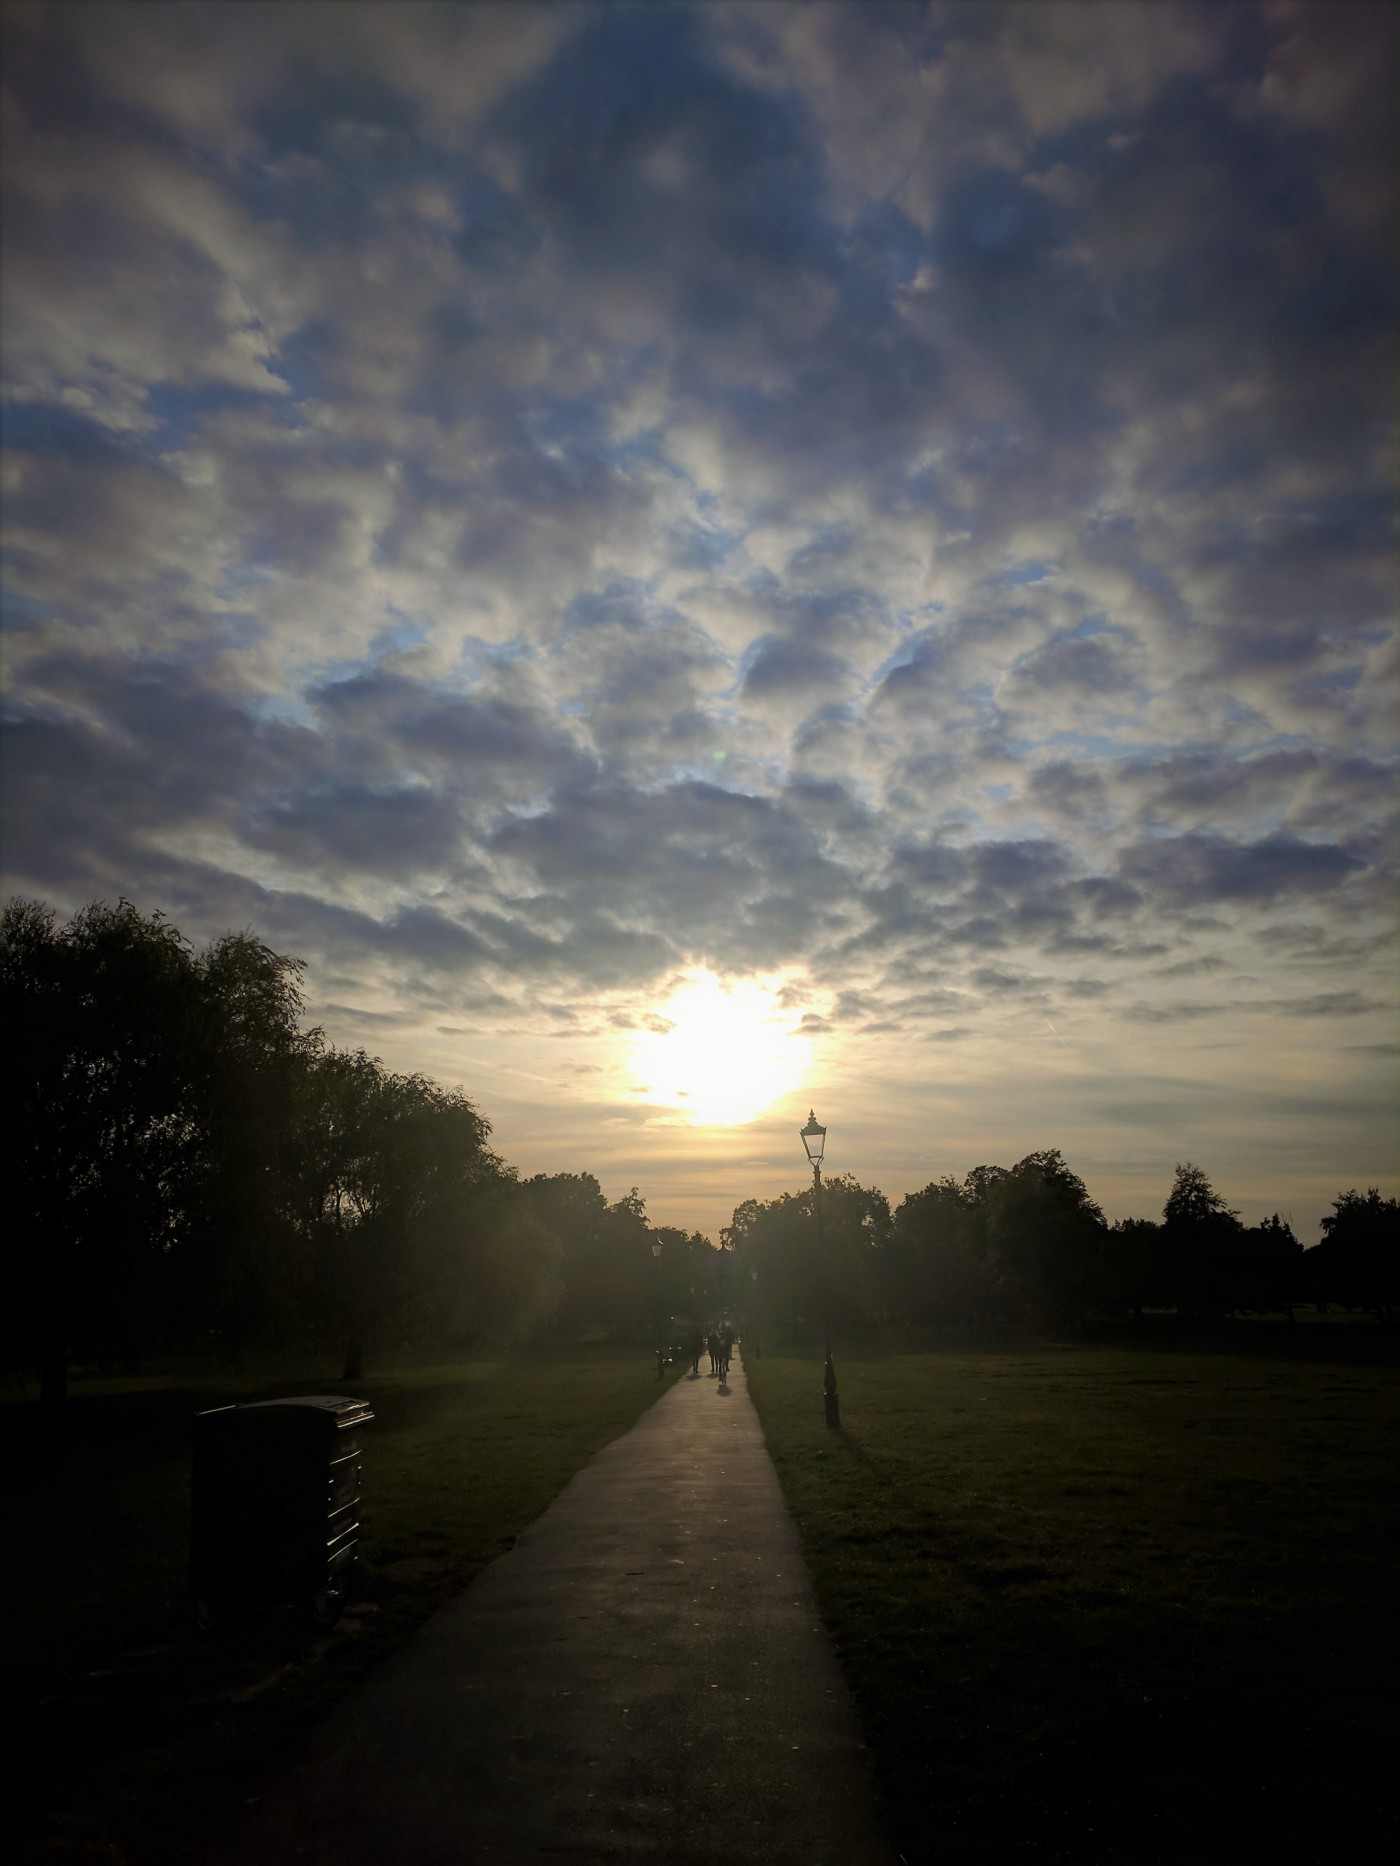 Park with sunset and grey fluffy clouds fading into distance